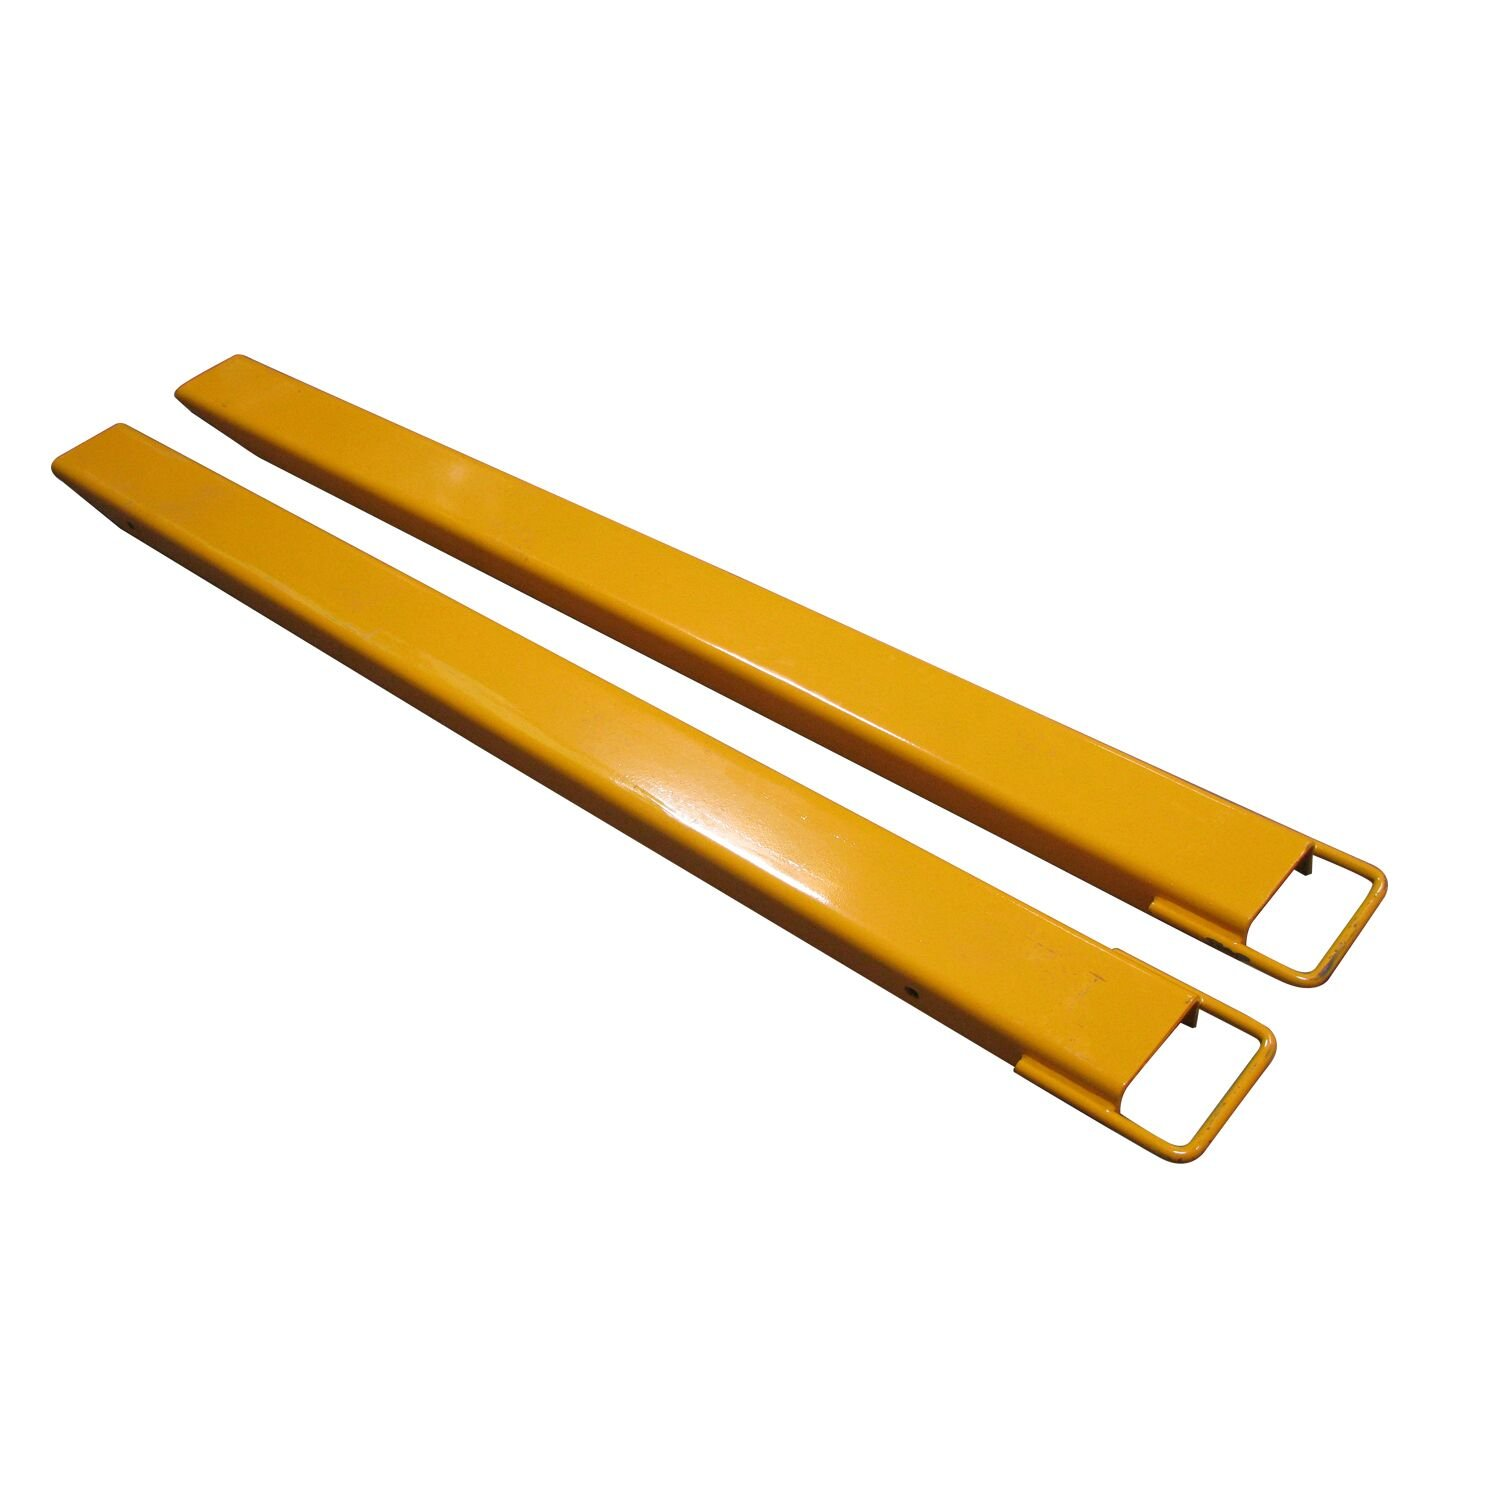 Eoslift EX724 Steel Fork Extensions Accommodates 4'' Fork Width 72'' Fork Length by Eoslift